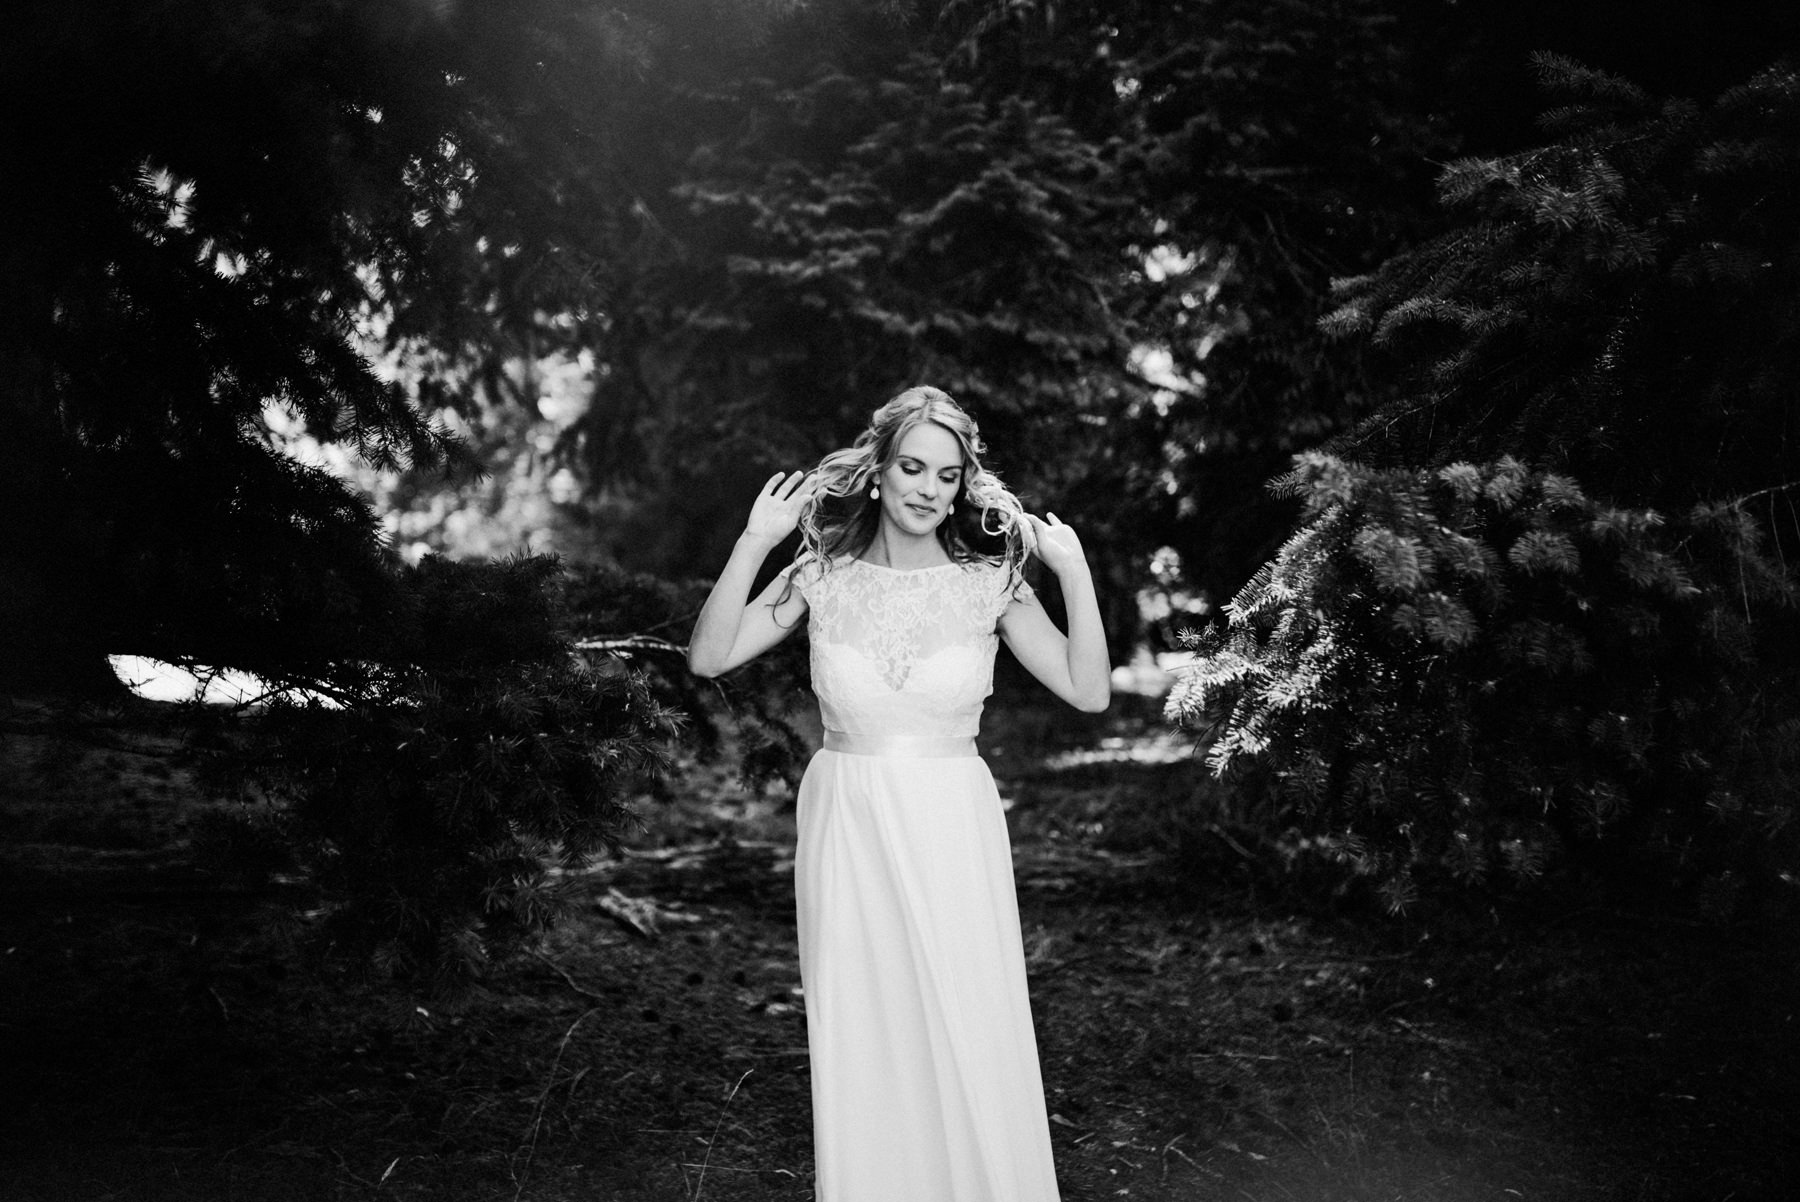 180-fine-art-film-wedding-portraits-at-nature-bride-near-the-lake-crescent-lodge.jpg